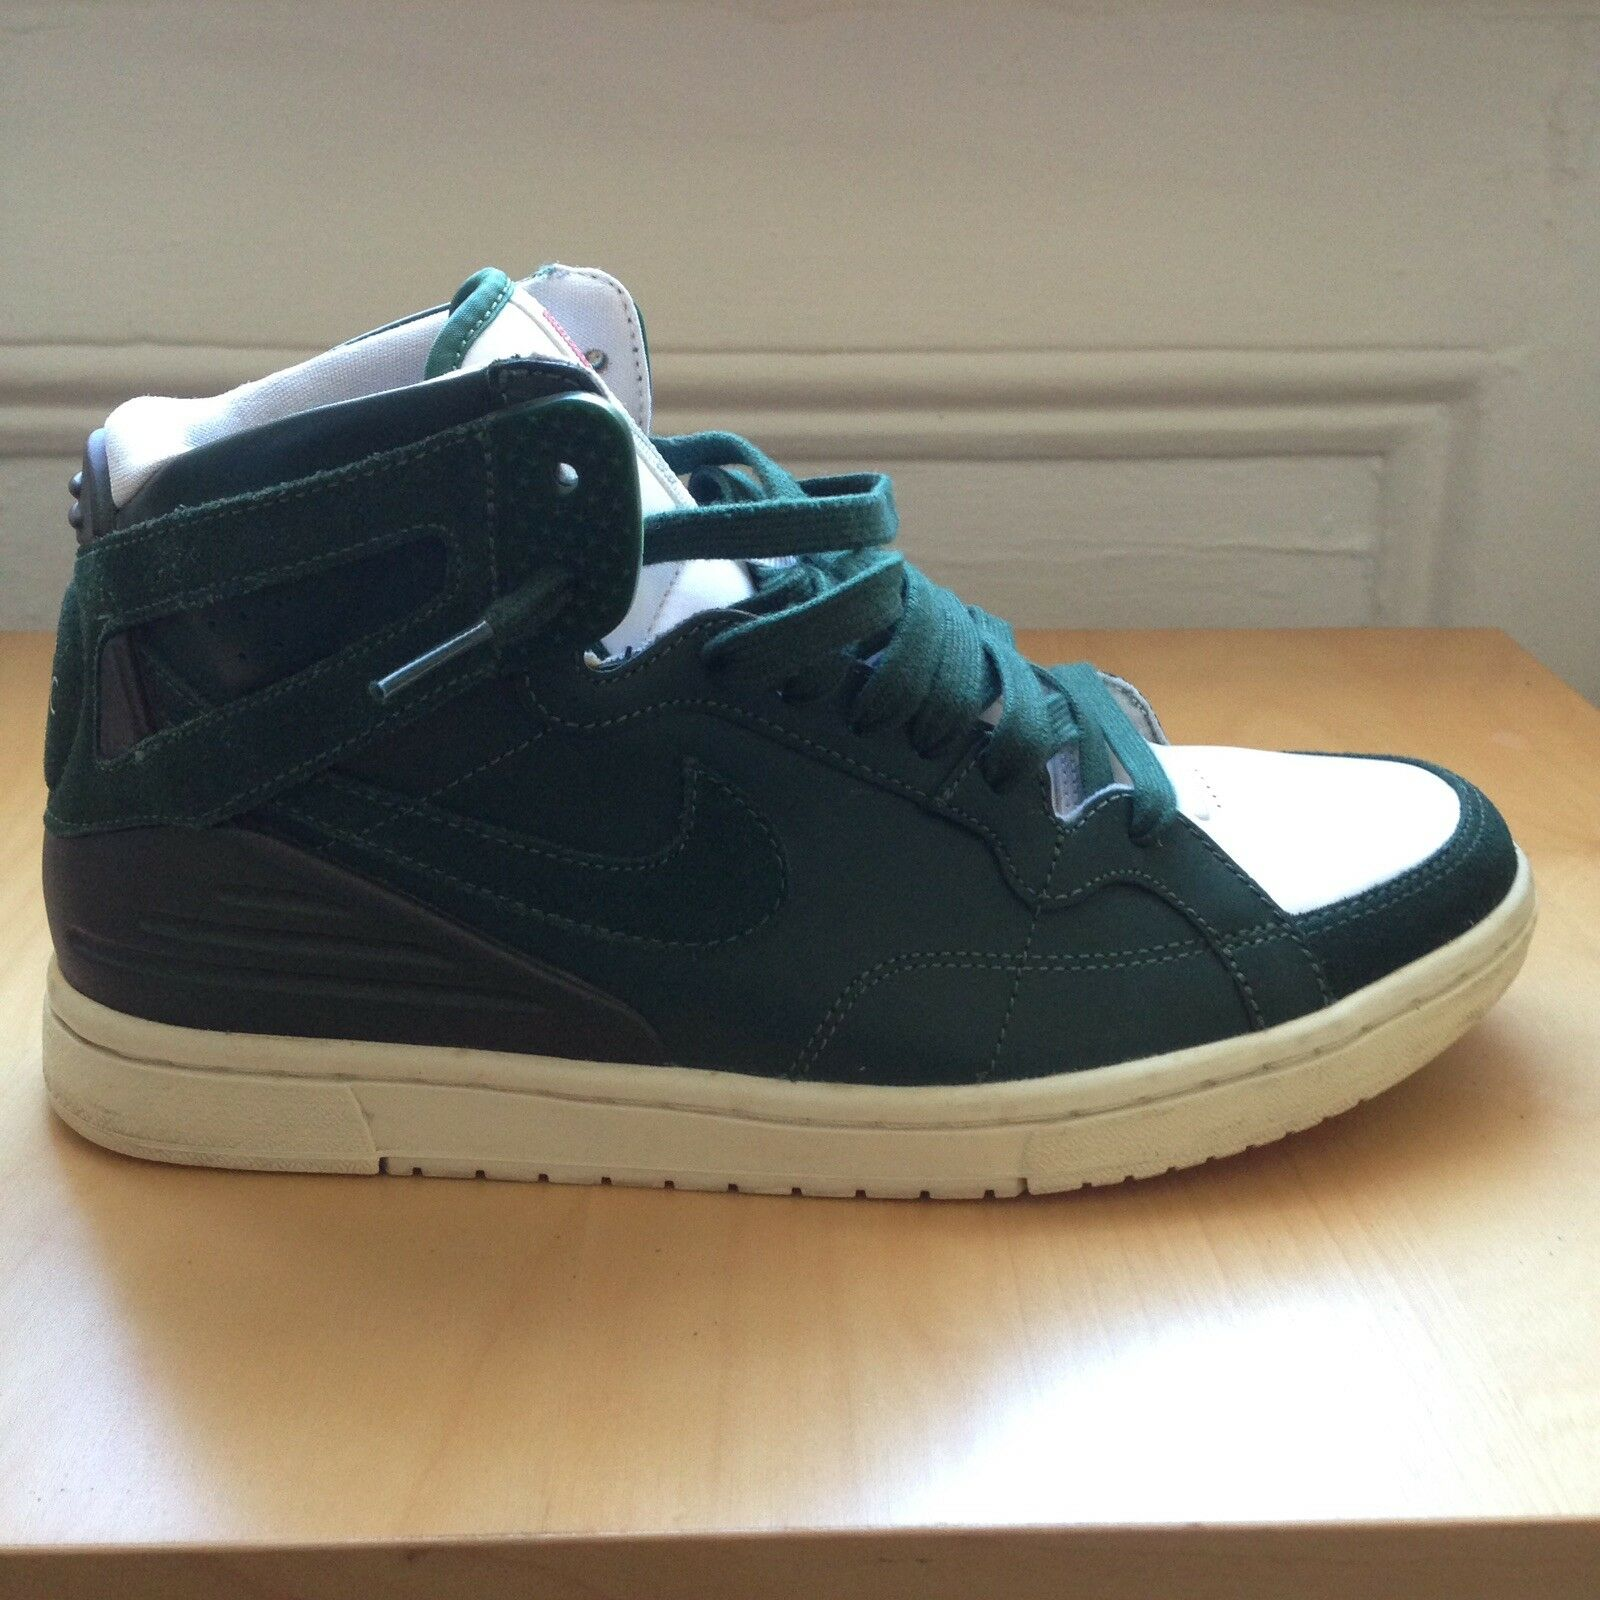 Nike Air Zoom 94 HI Supreme (2010) Men's Size 8 Team Green Limited With Box Used